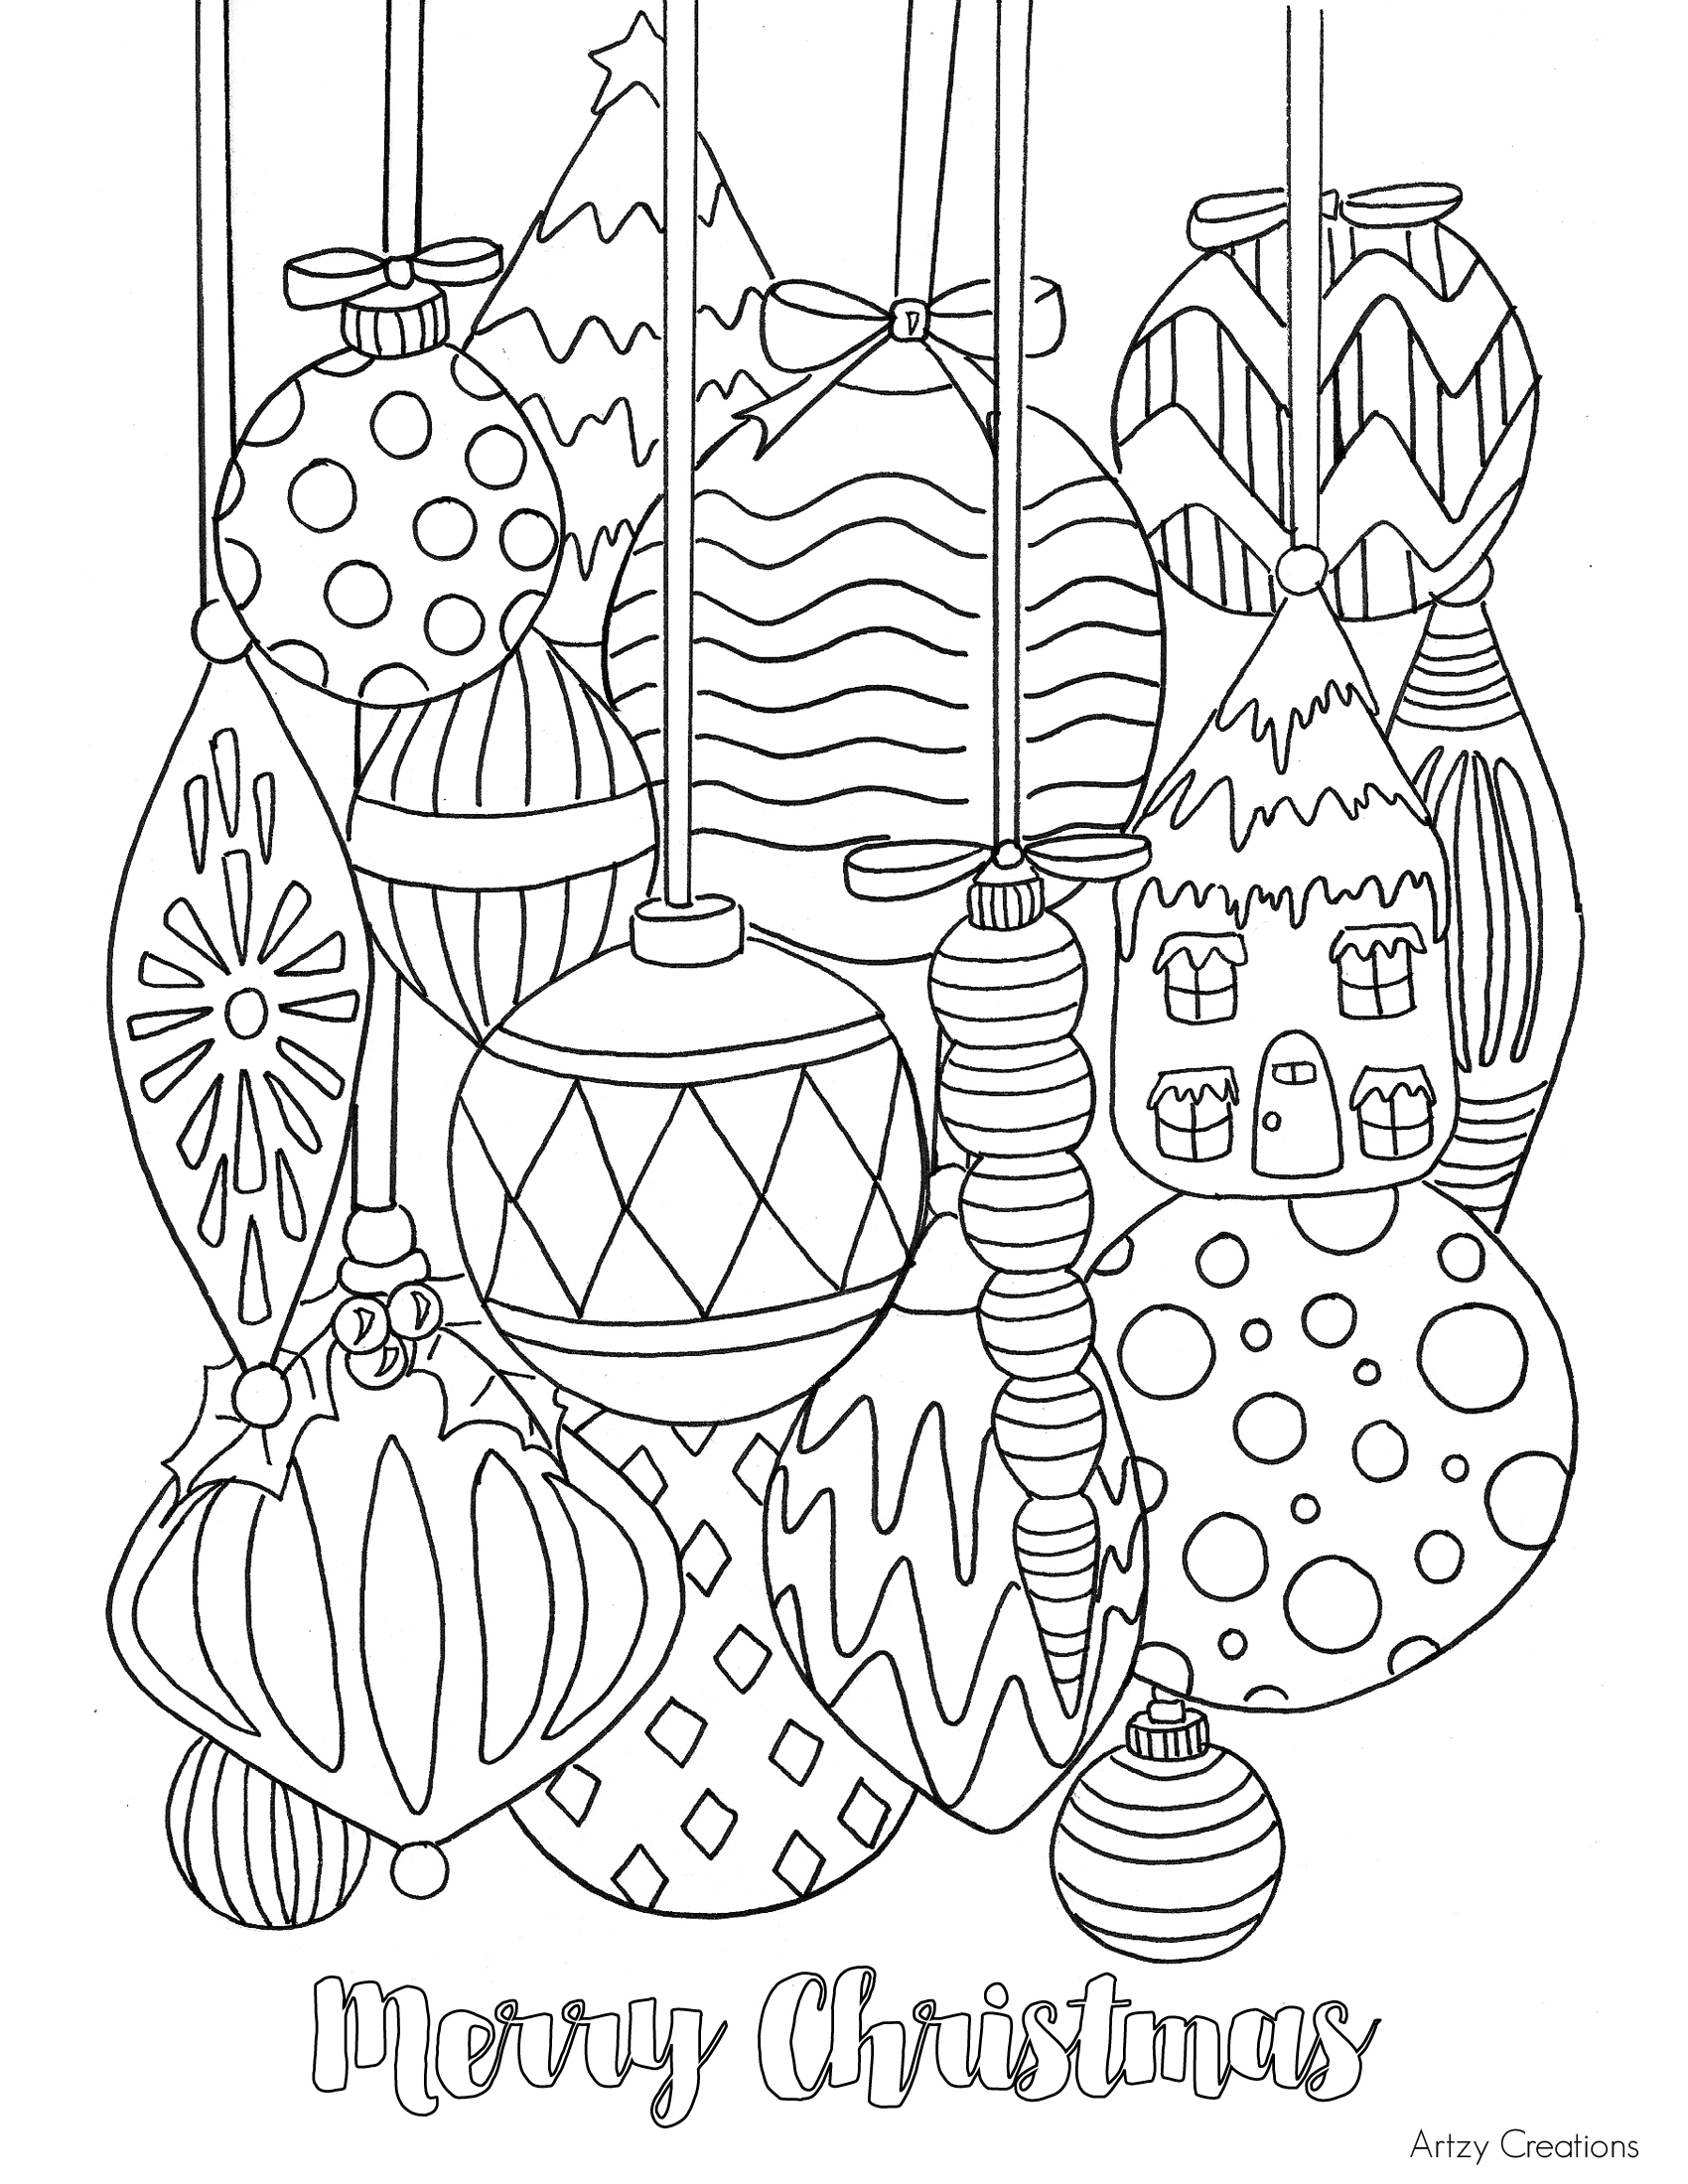 Christmas Coloring Pages Printable Pdf With Santa For Adults Free Books